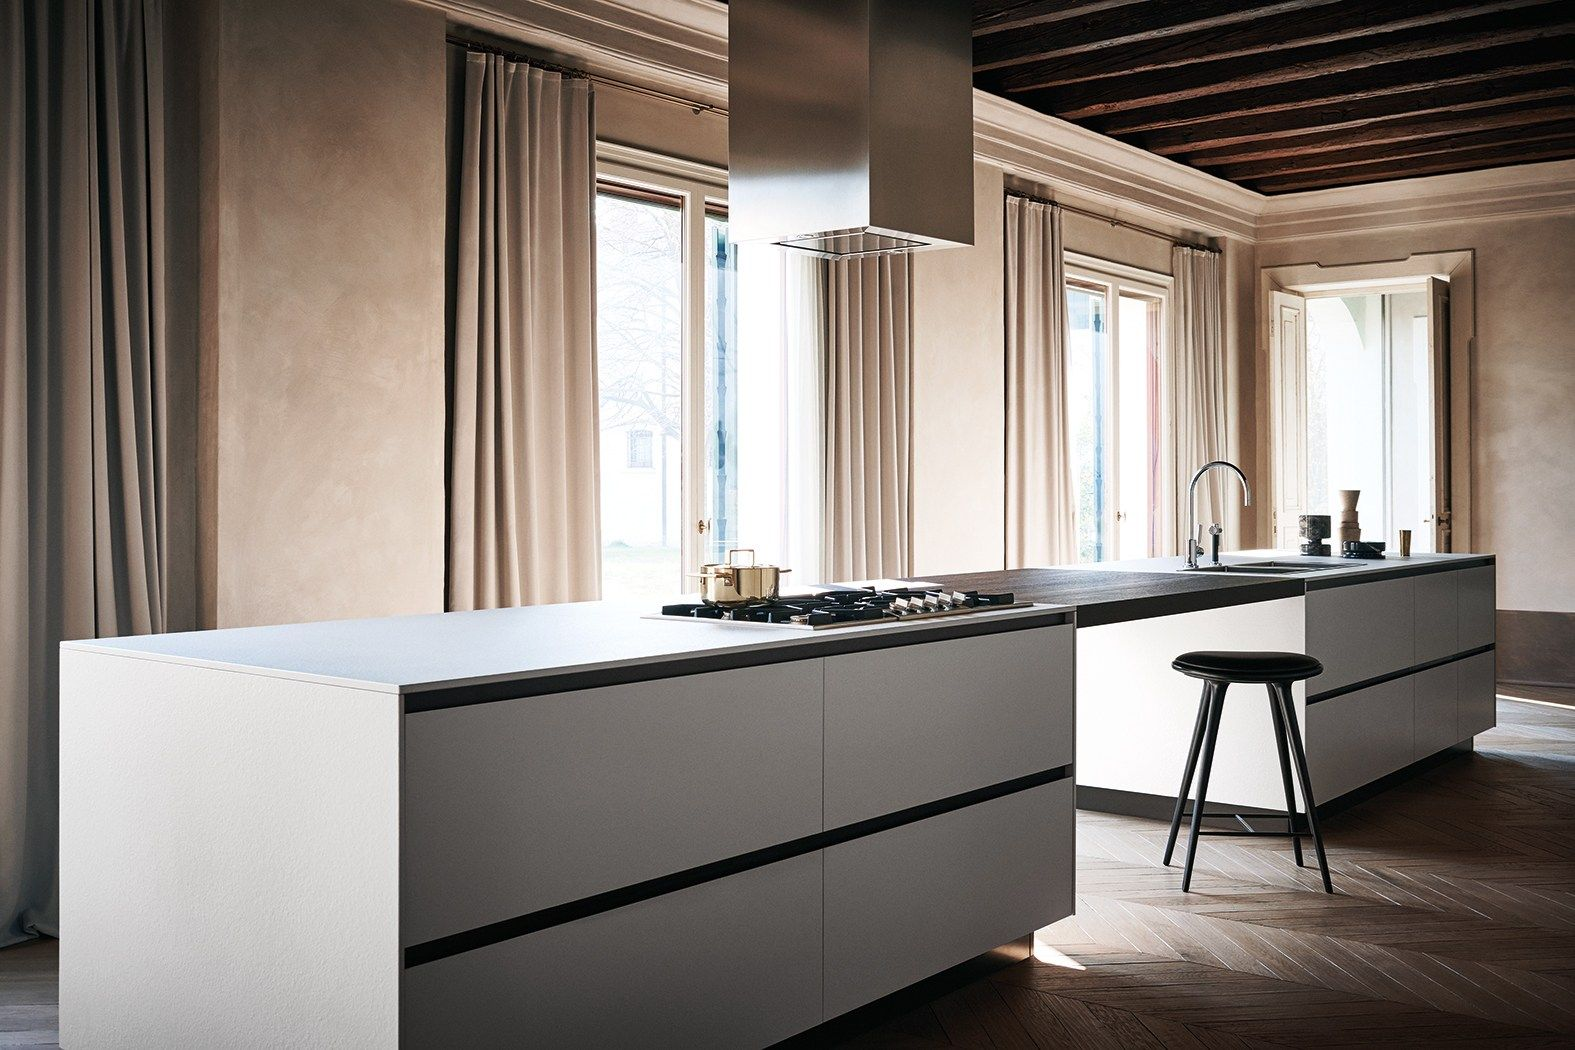 Cesar Kitchens Fascinating Httpwww.archiproductsesproductoscesararredamenticocina